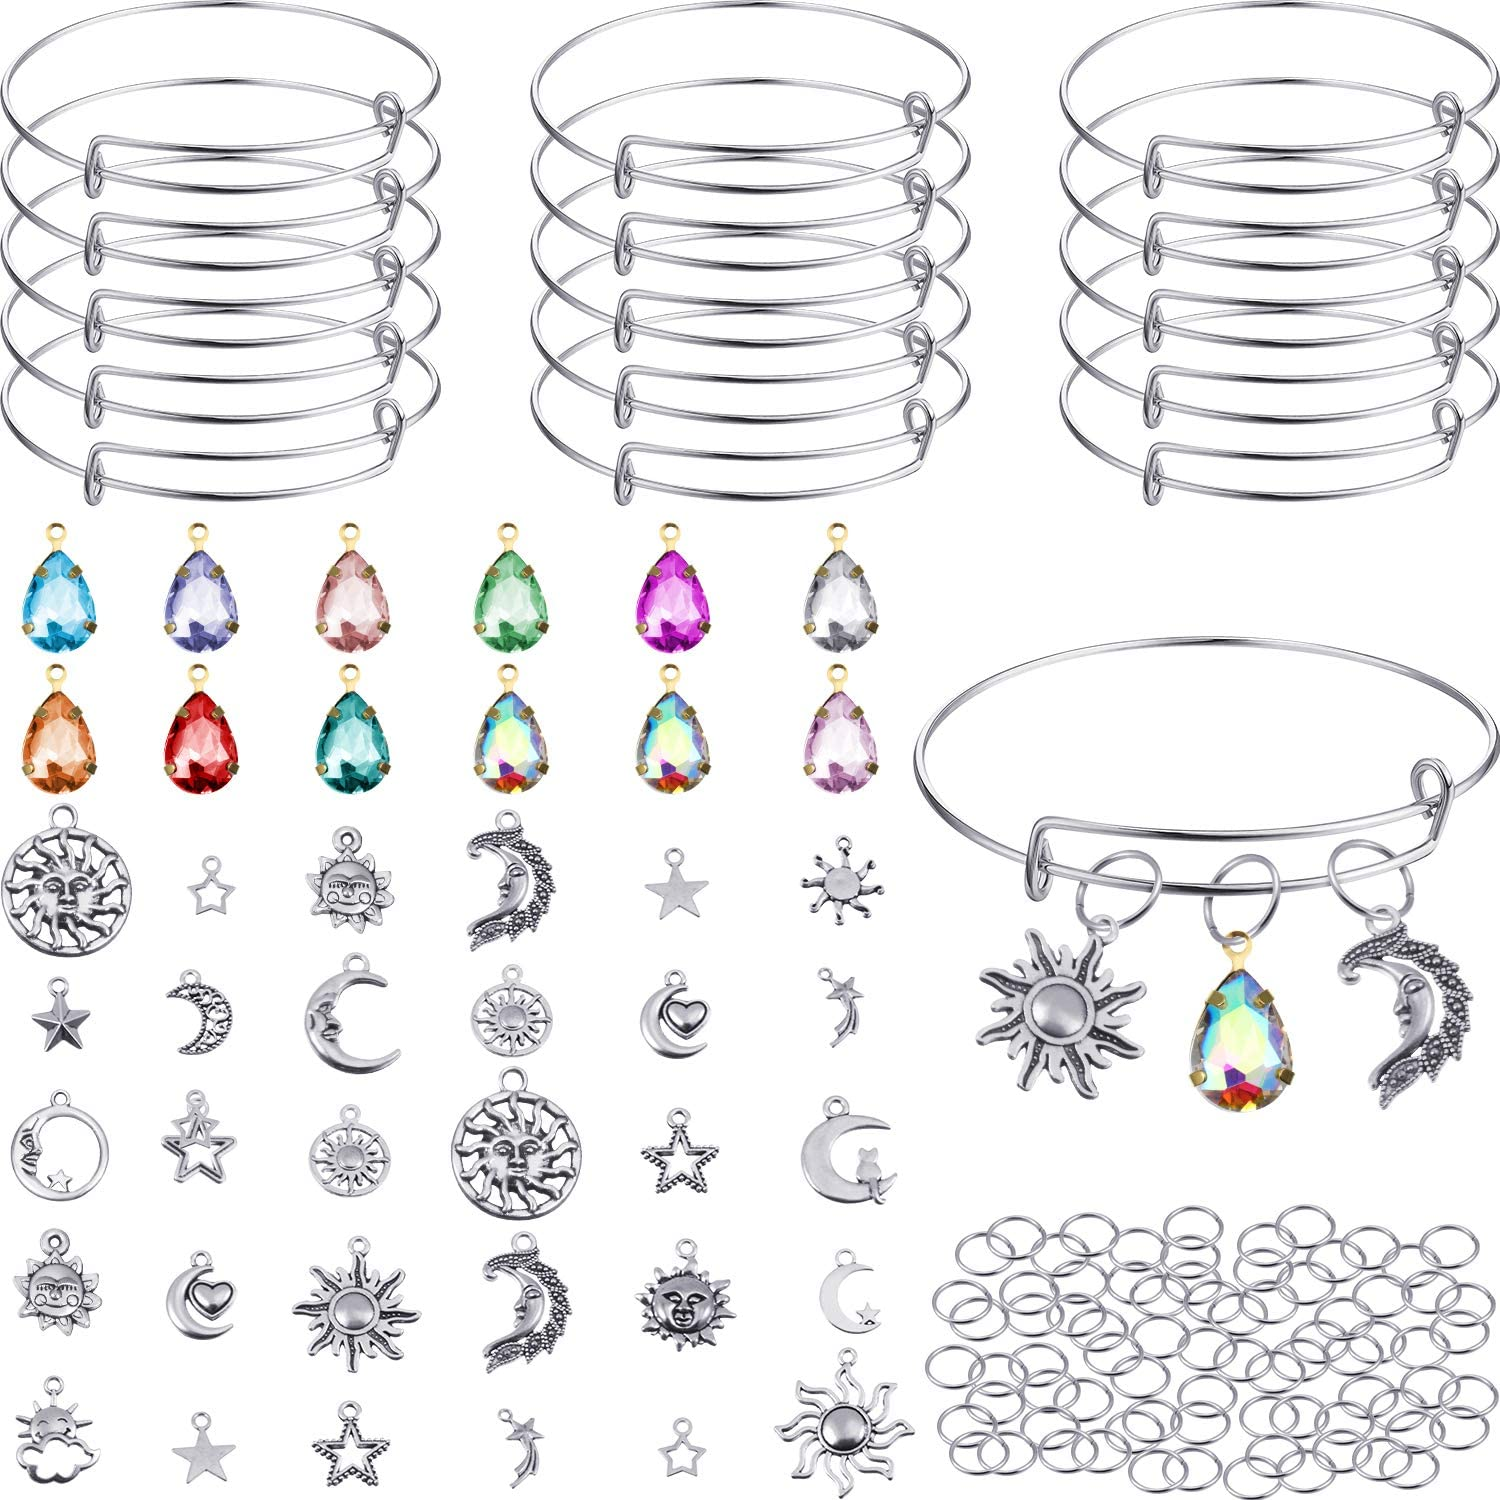 65 DIY Silver Sun Moon Stars Charm Pendant Assorted with Expandable Bangle Adjustable Wire Bracelets Crystal Charms Extra 200 Pack Open Ring for DIY Craft Jewelry Making